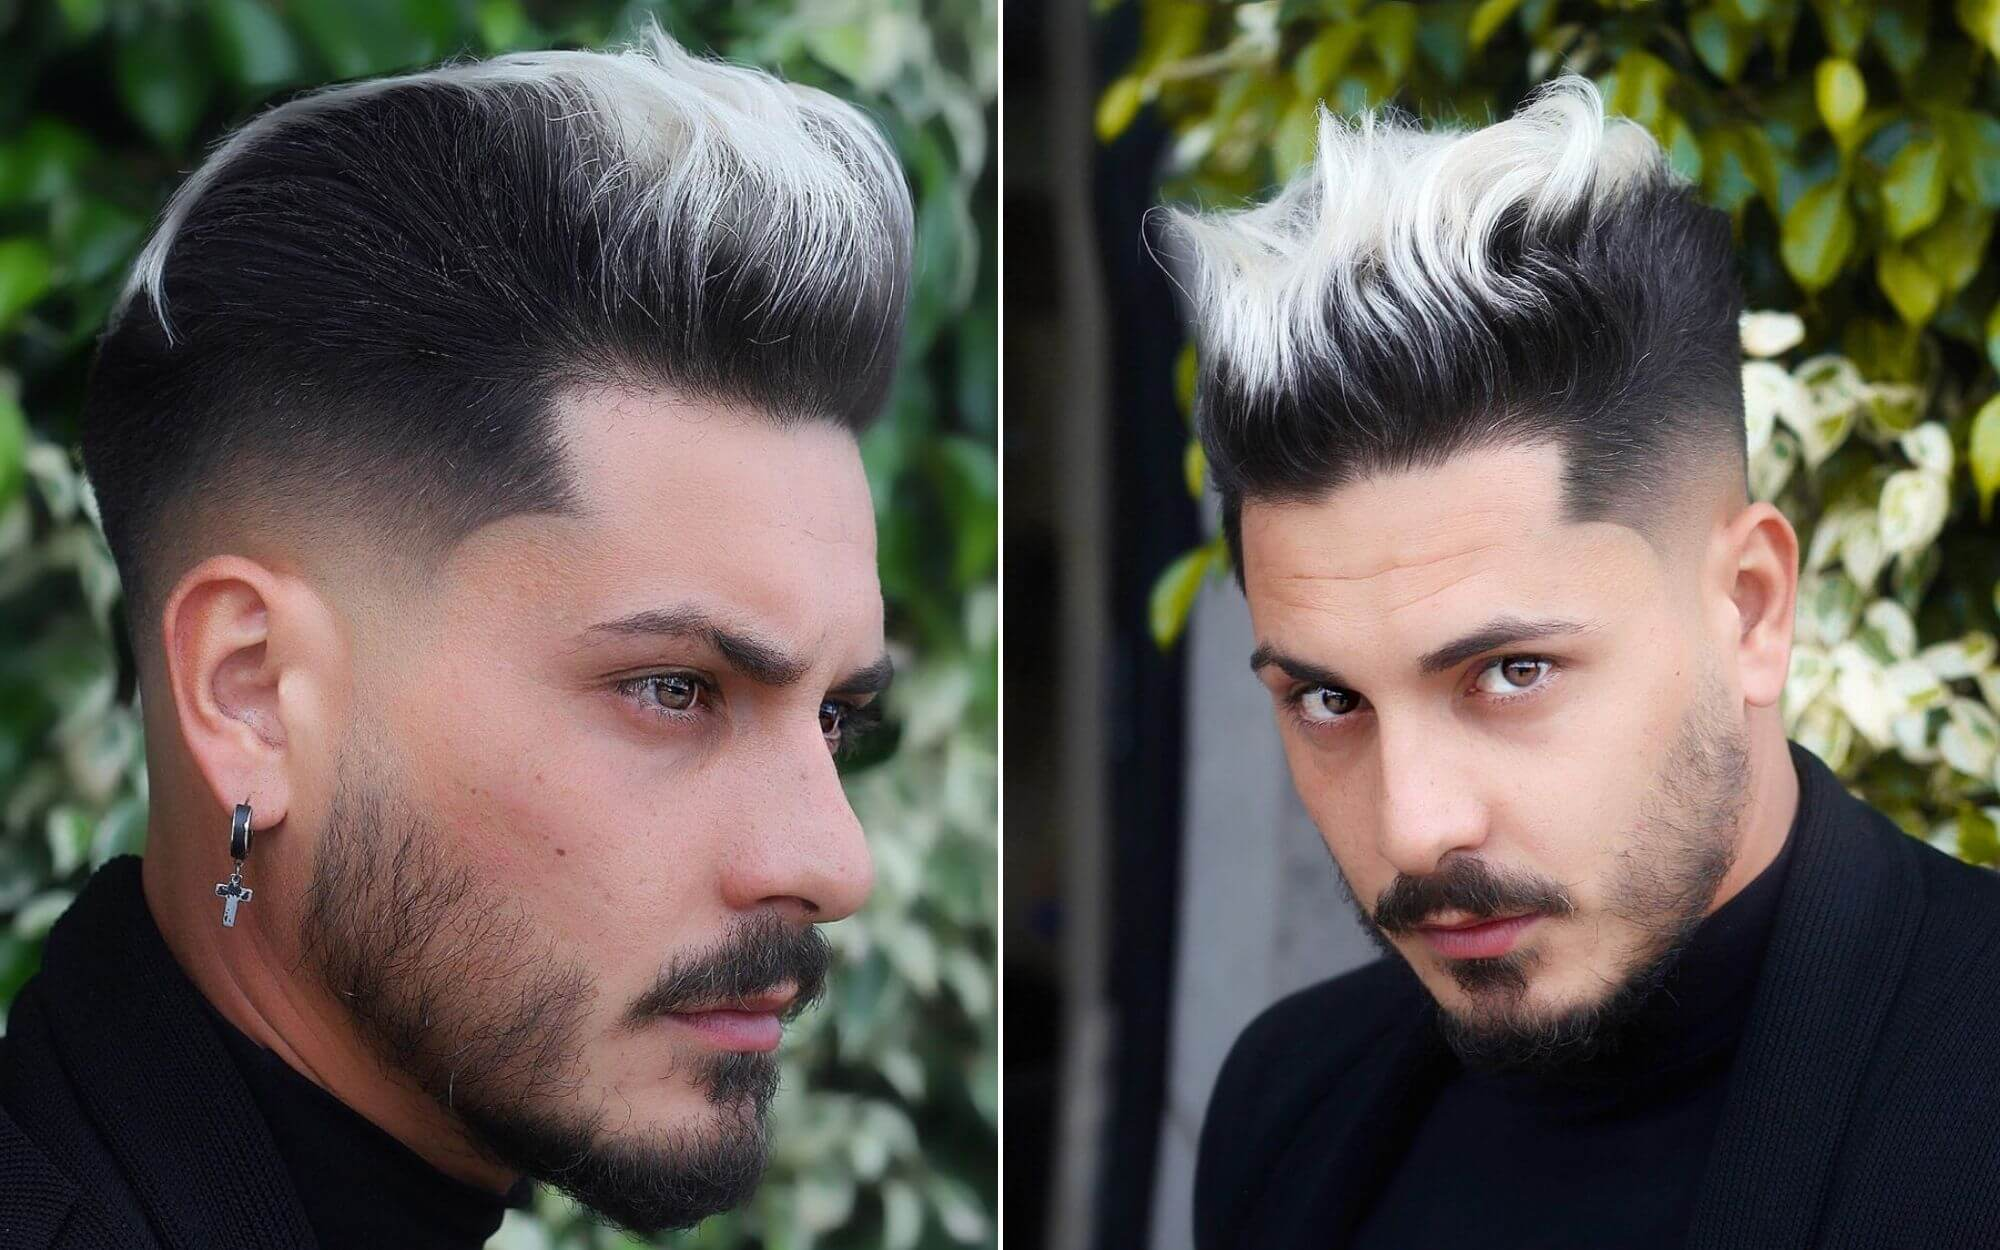 Pompadour Hairstyle with Undercut